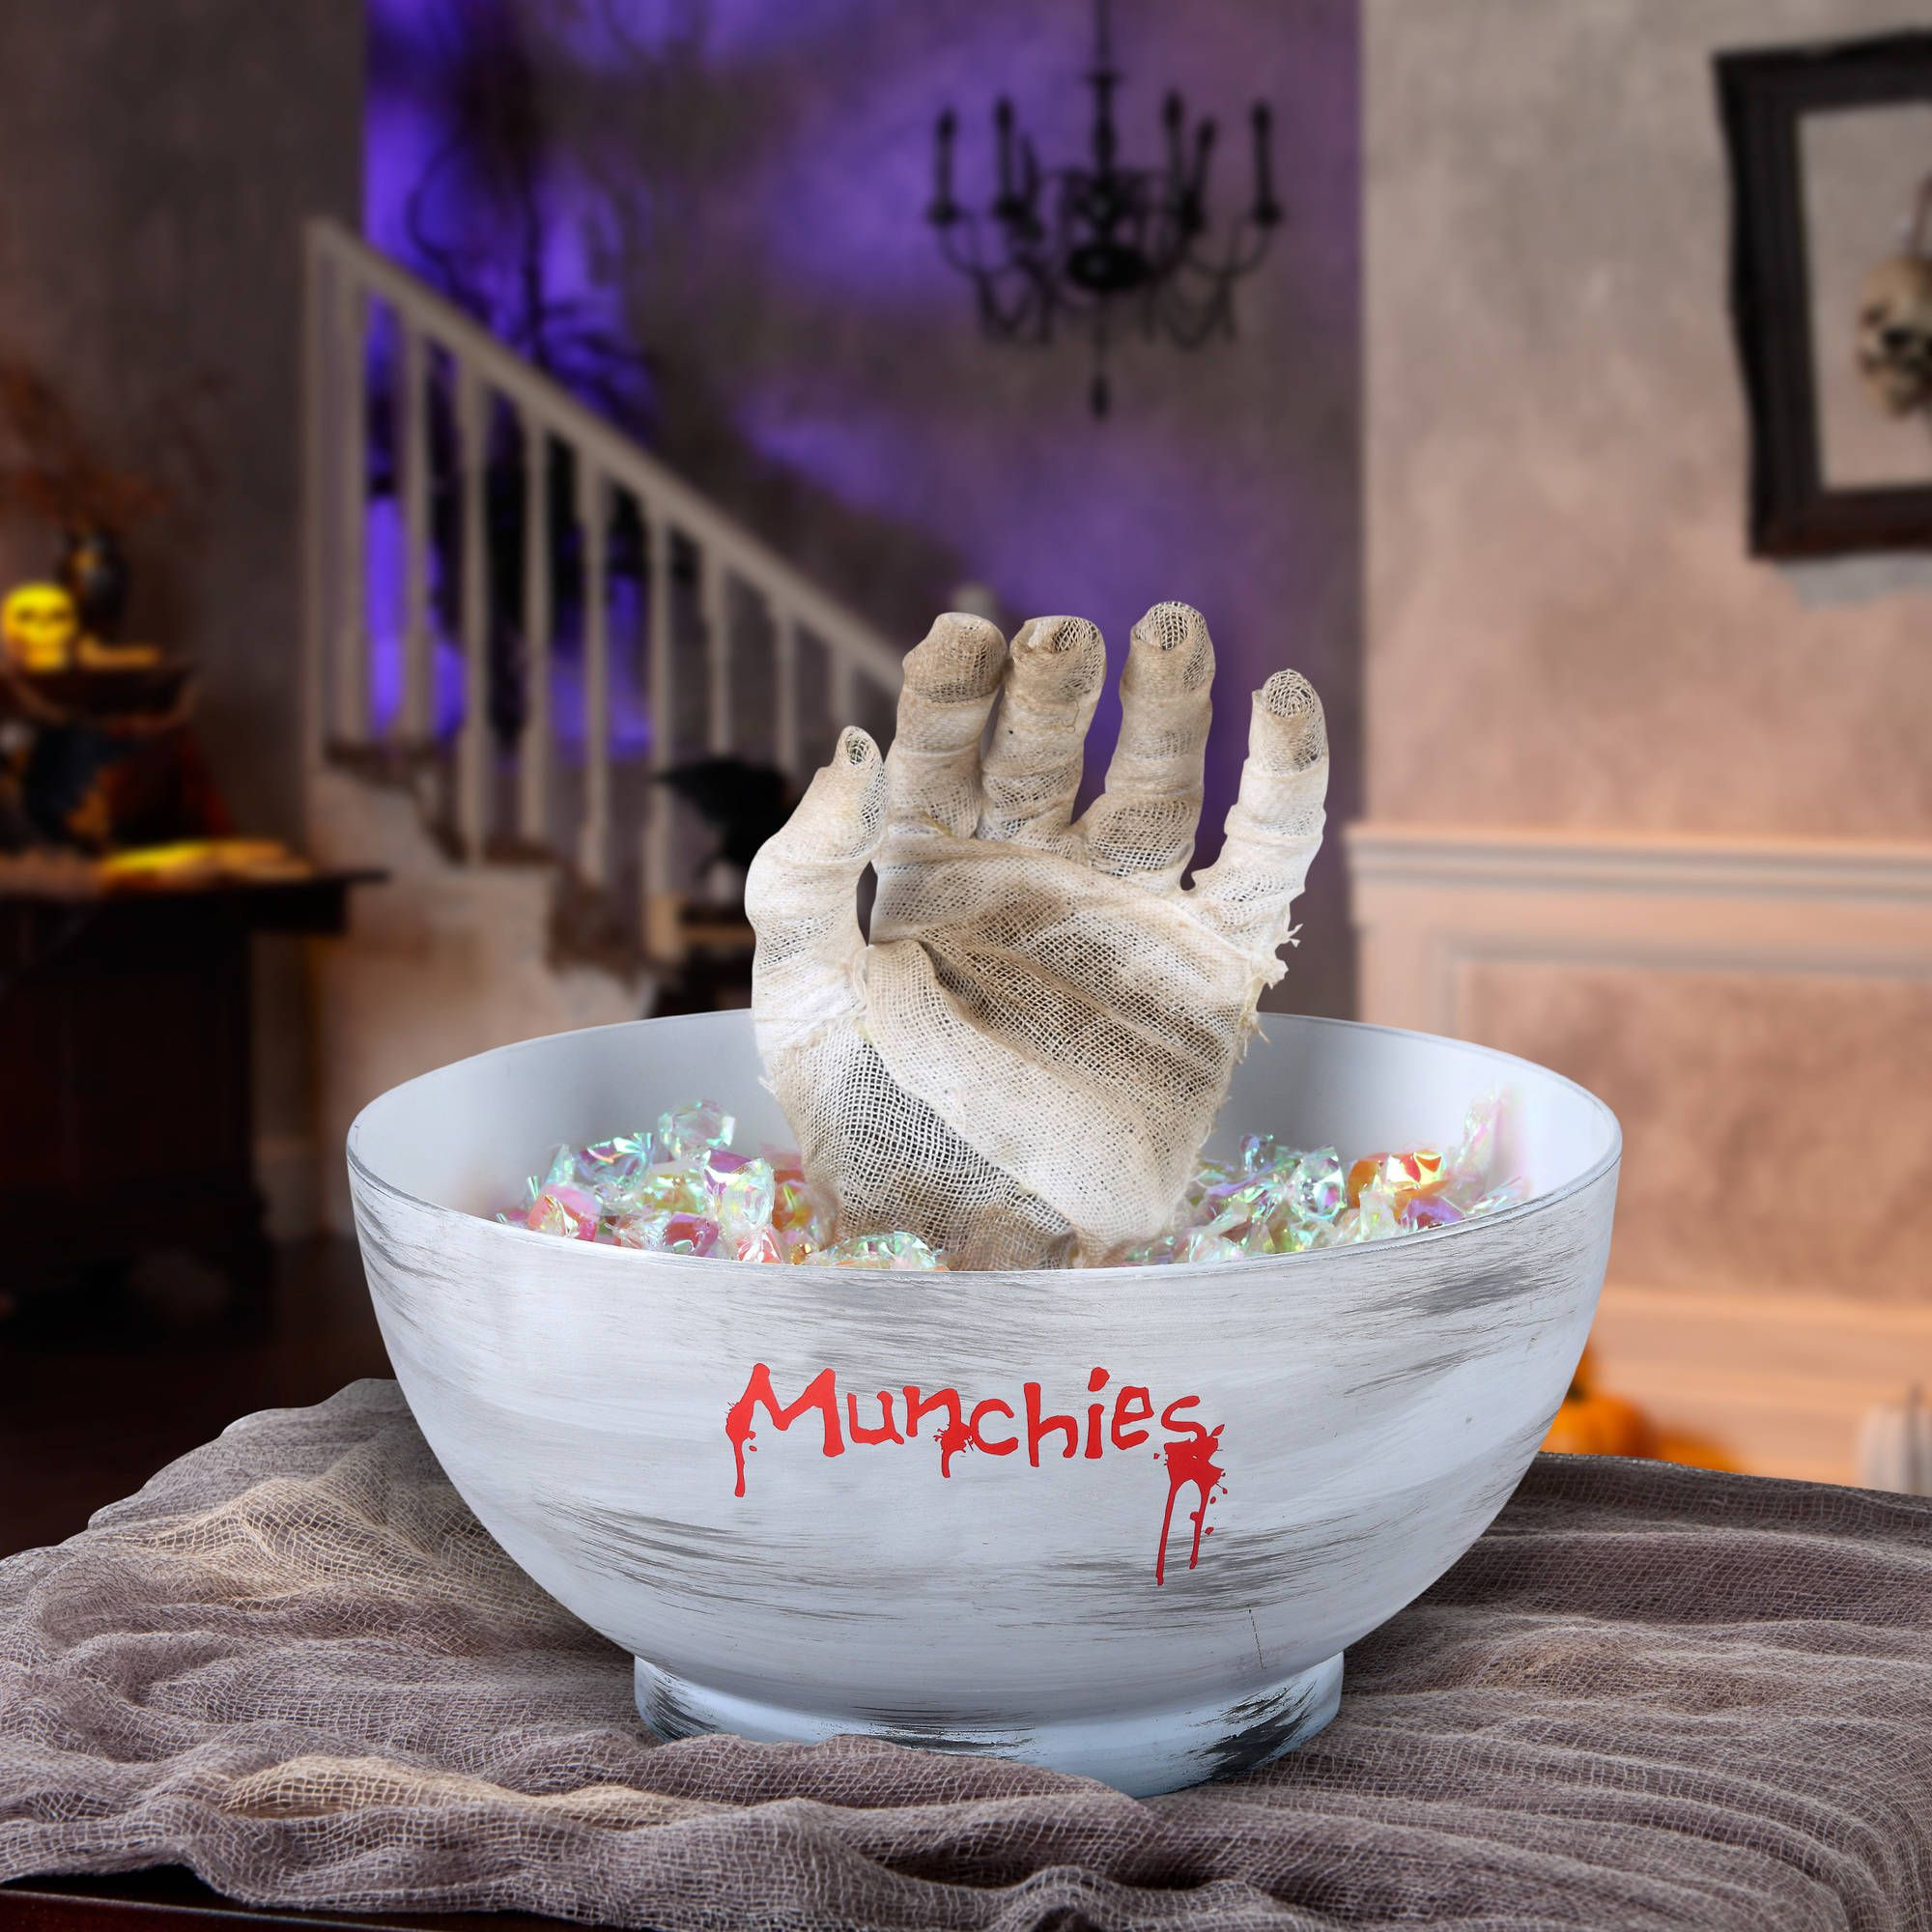 Frighten your guests with this creepy decoration. The